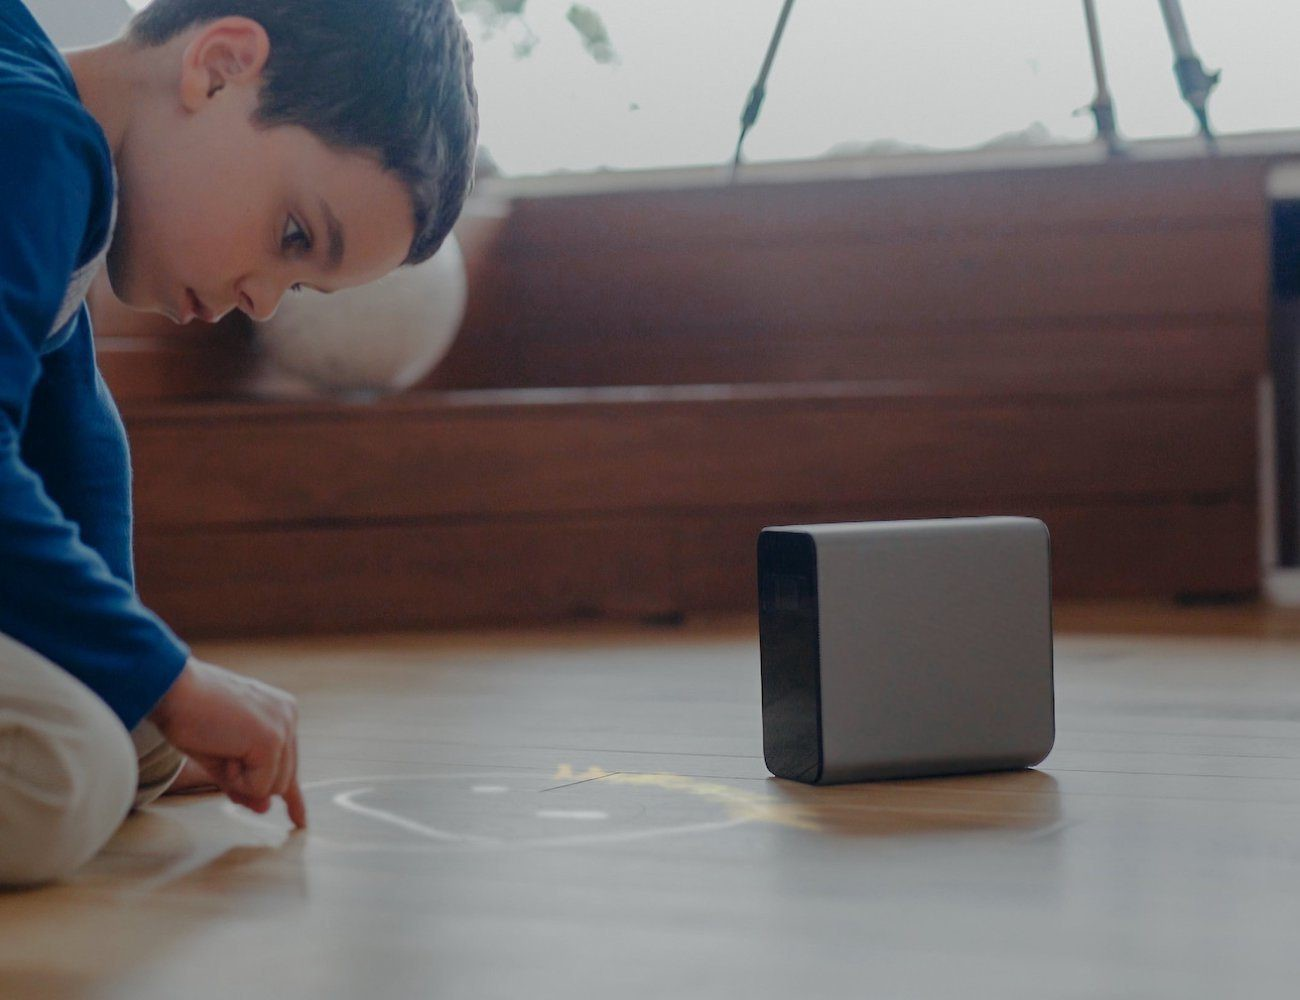 12 Gadgets That Bring You Close to the Future